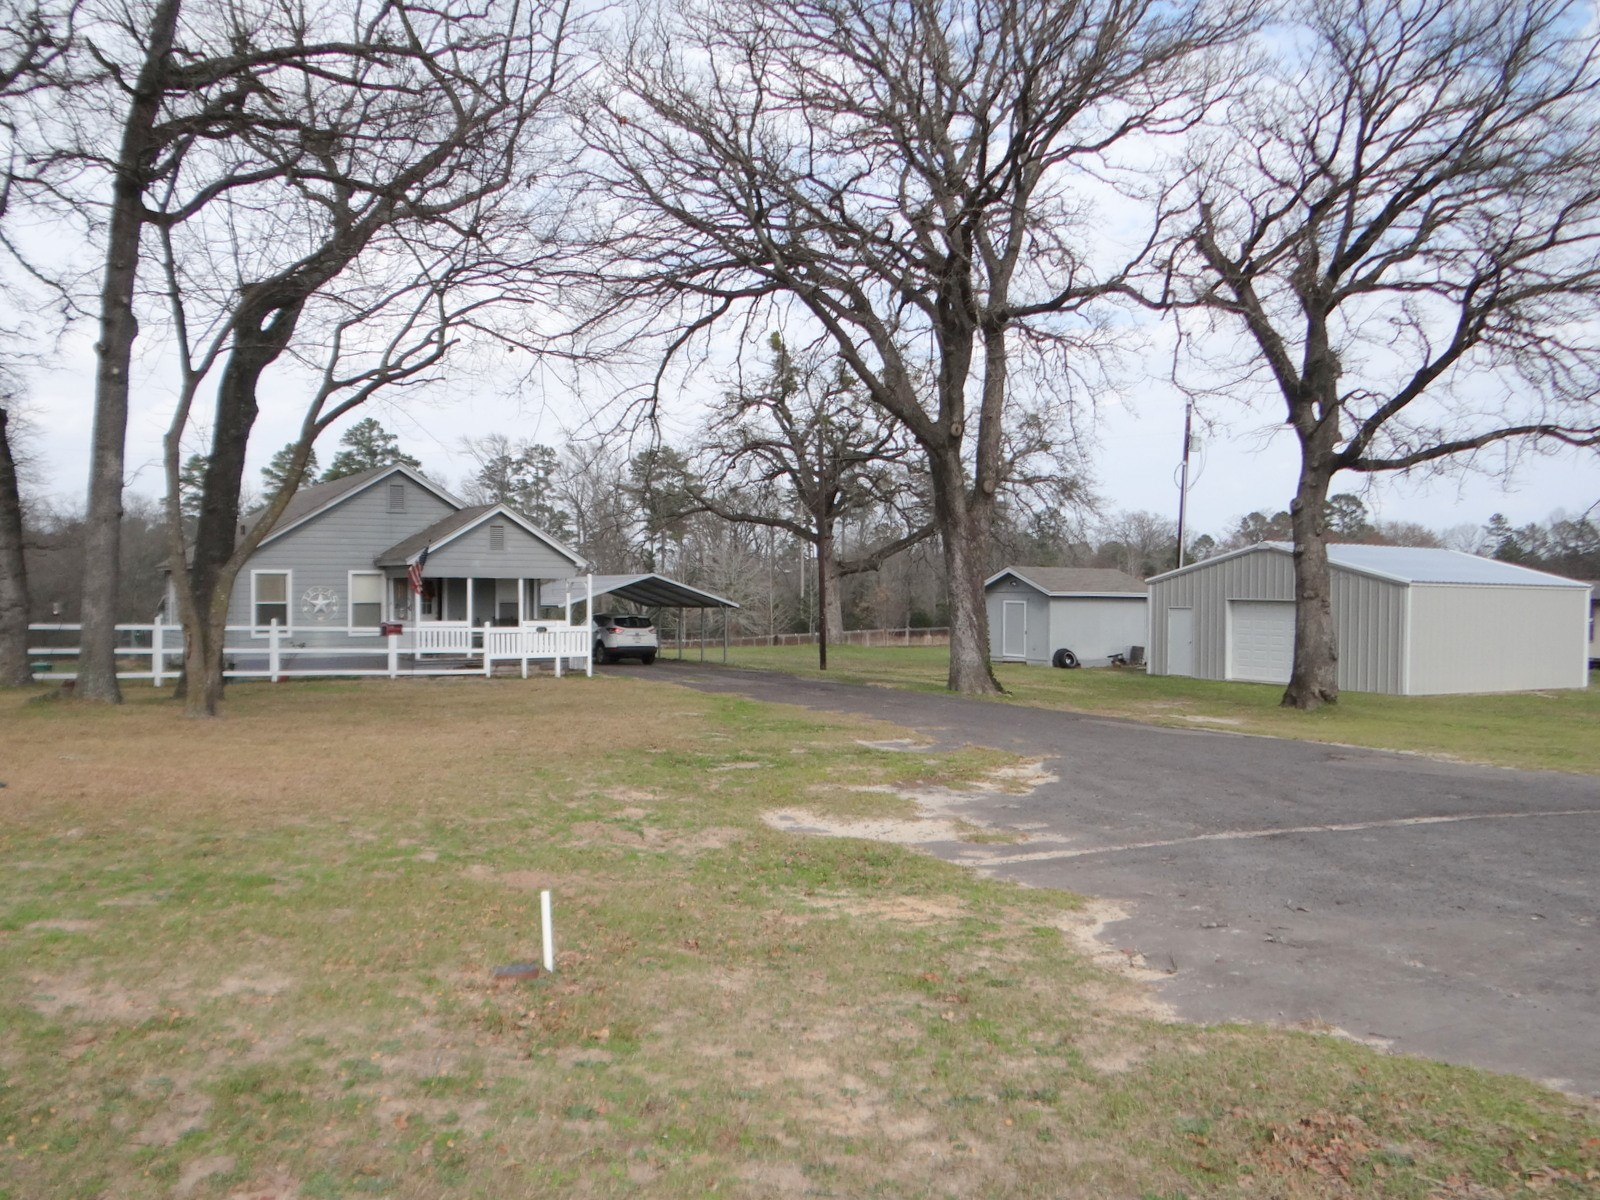 3 EAST TEXAS ACRES - LARGE POND + WORK SHOP + HOME FOR SALE